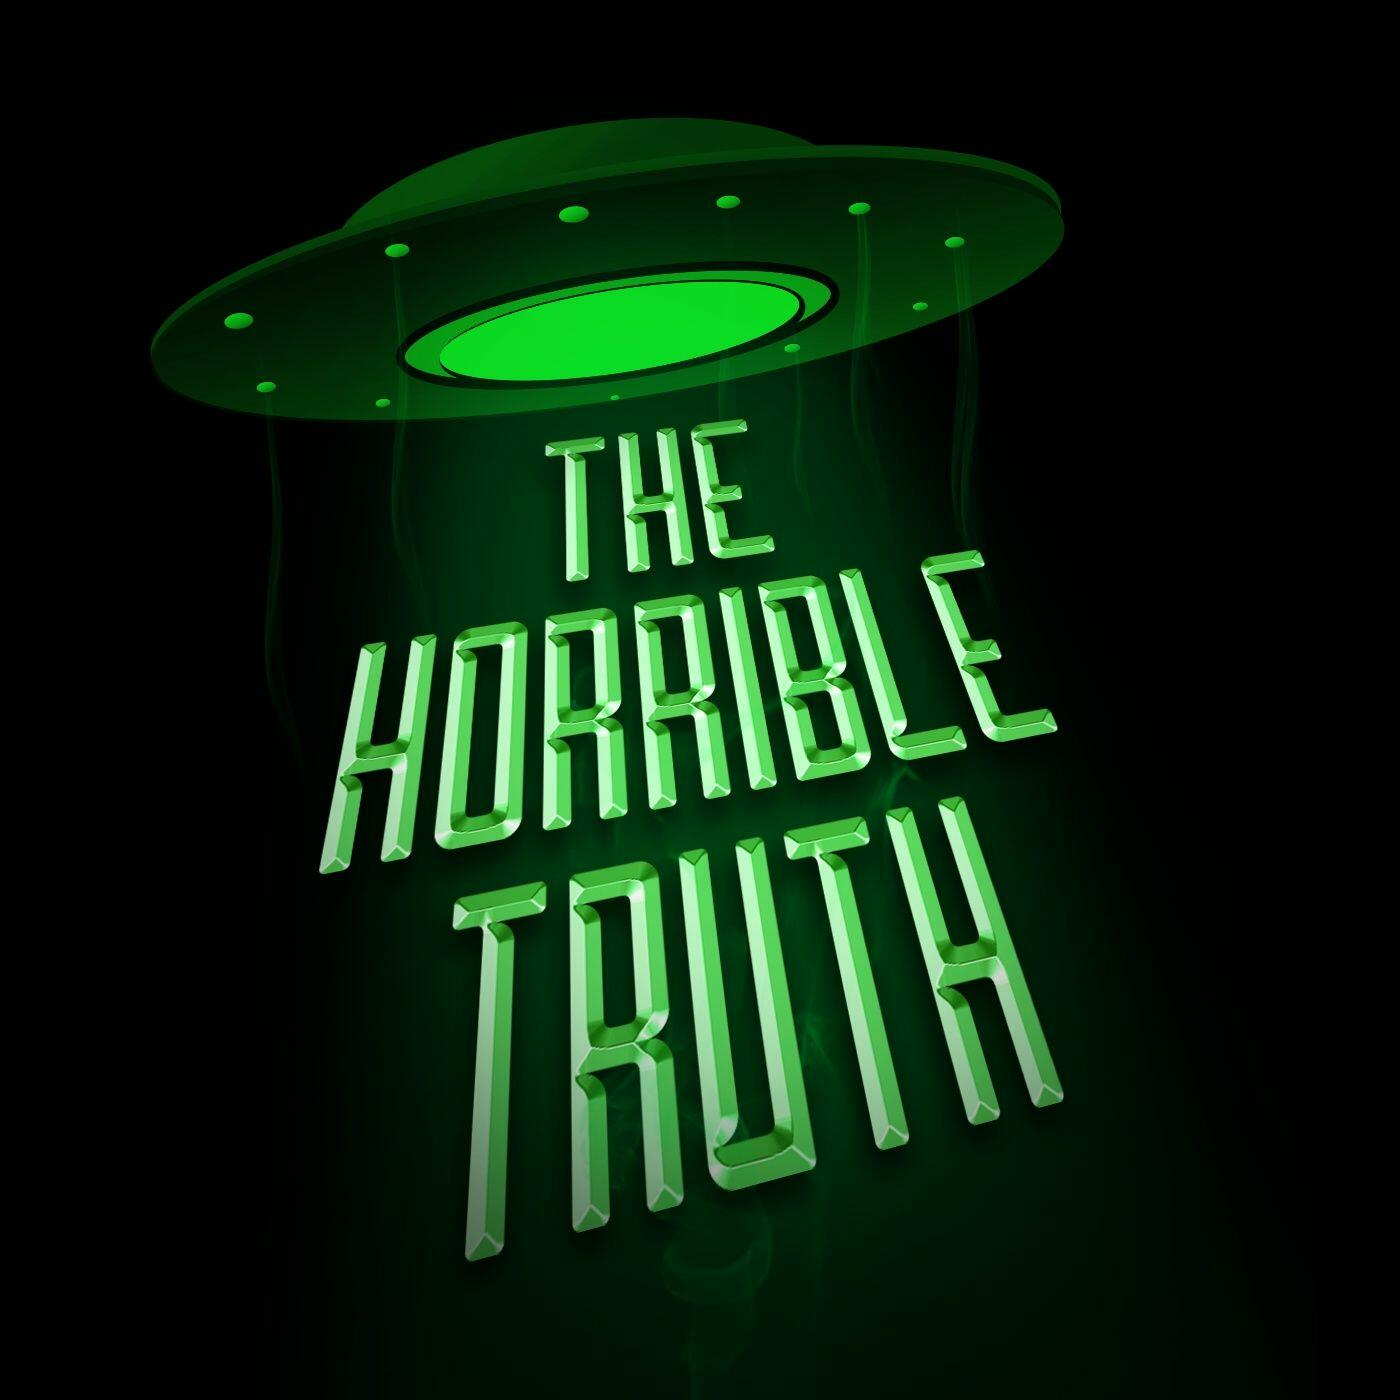 Listen to the The Horrible Truth Episode - What's considered the UFO capital of the Northeast? on iHeartRadio | iHeartRadio